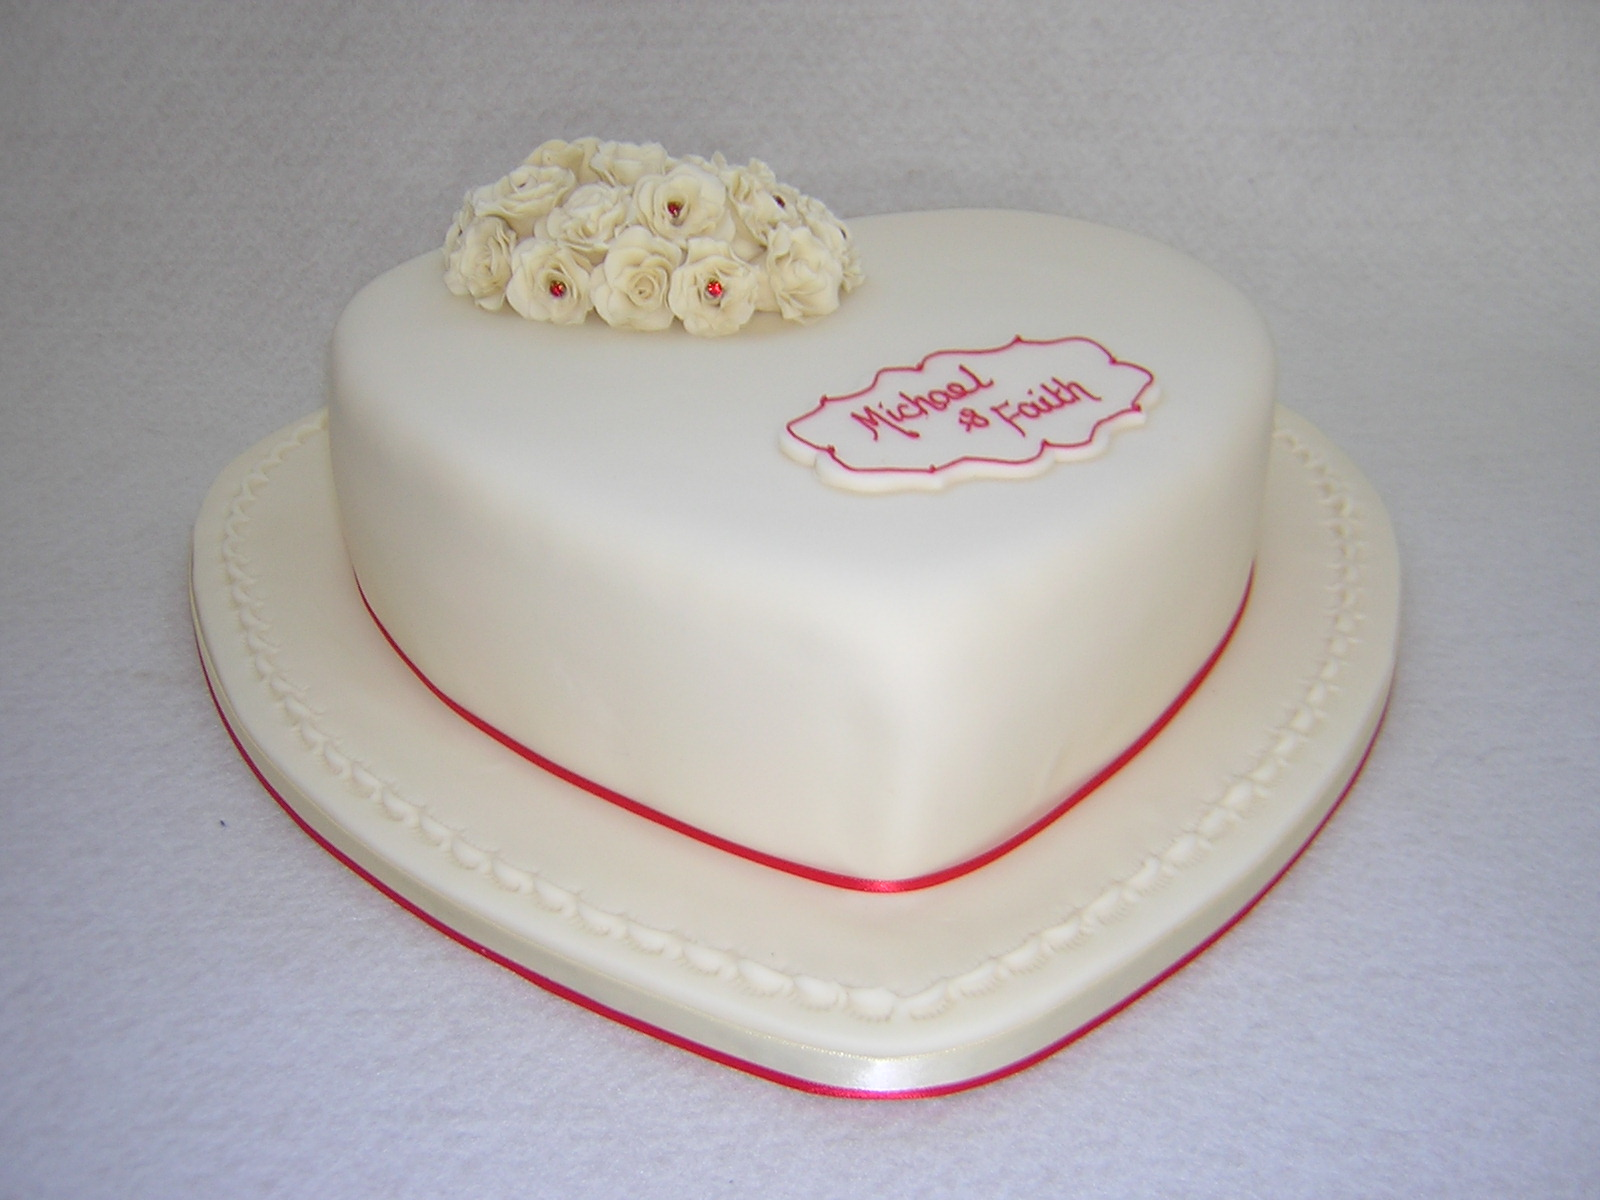 Heart Shaped Anniversary Cake Images : Anniversary Cakes - Julie s Creative CakesJulie s Creative ...